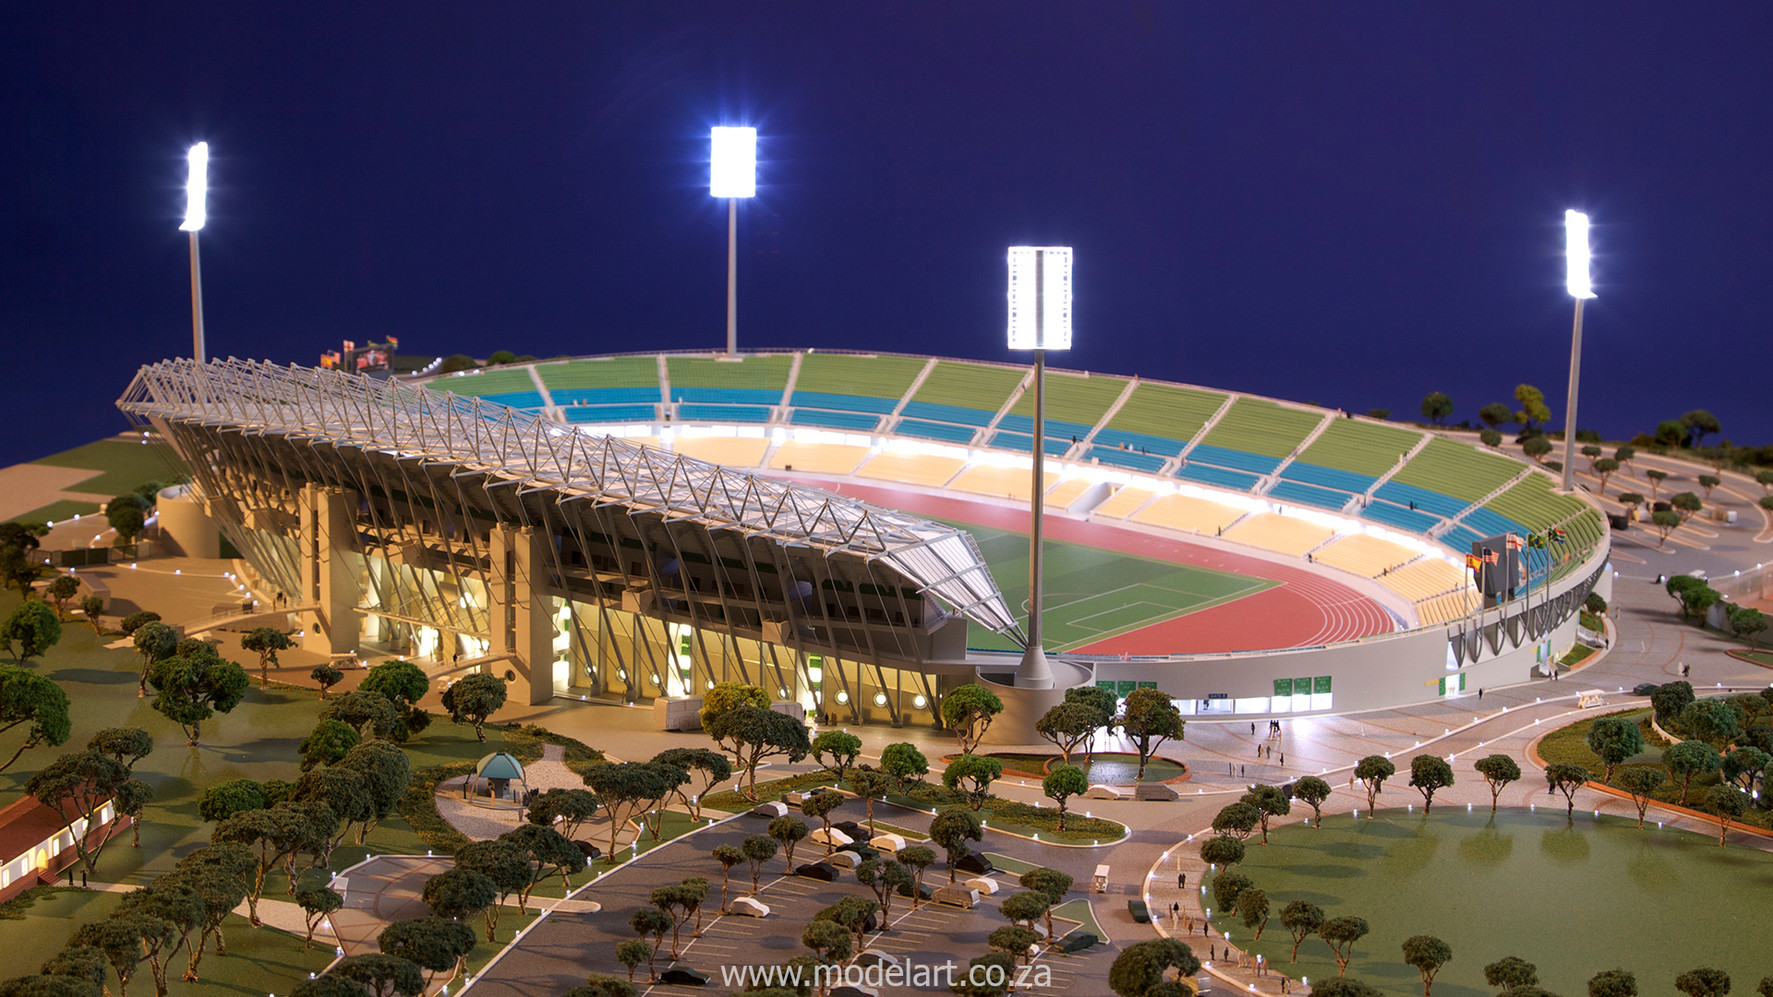 Architectural-Scale-Model-Sports Facilities-Royal Bafokeng Stadium-5